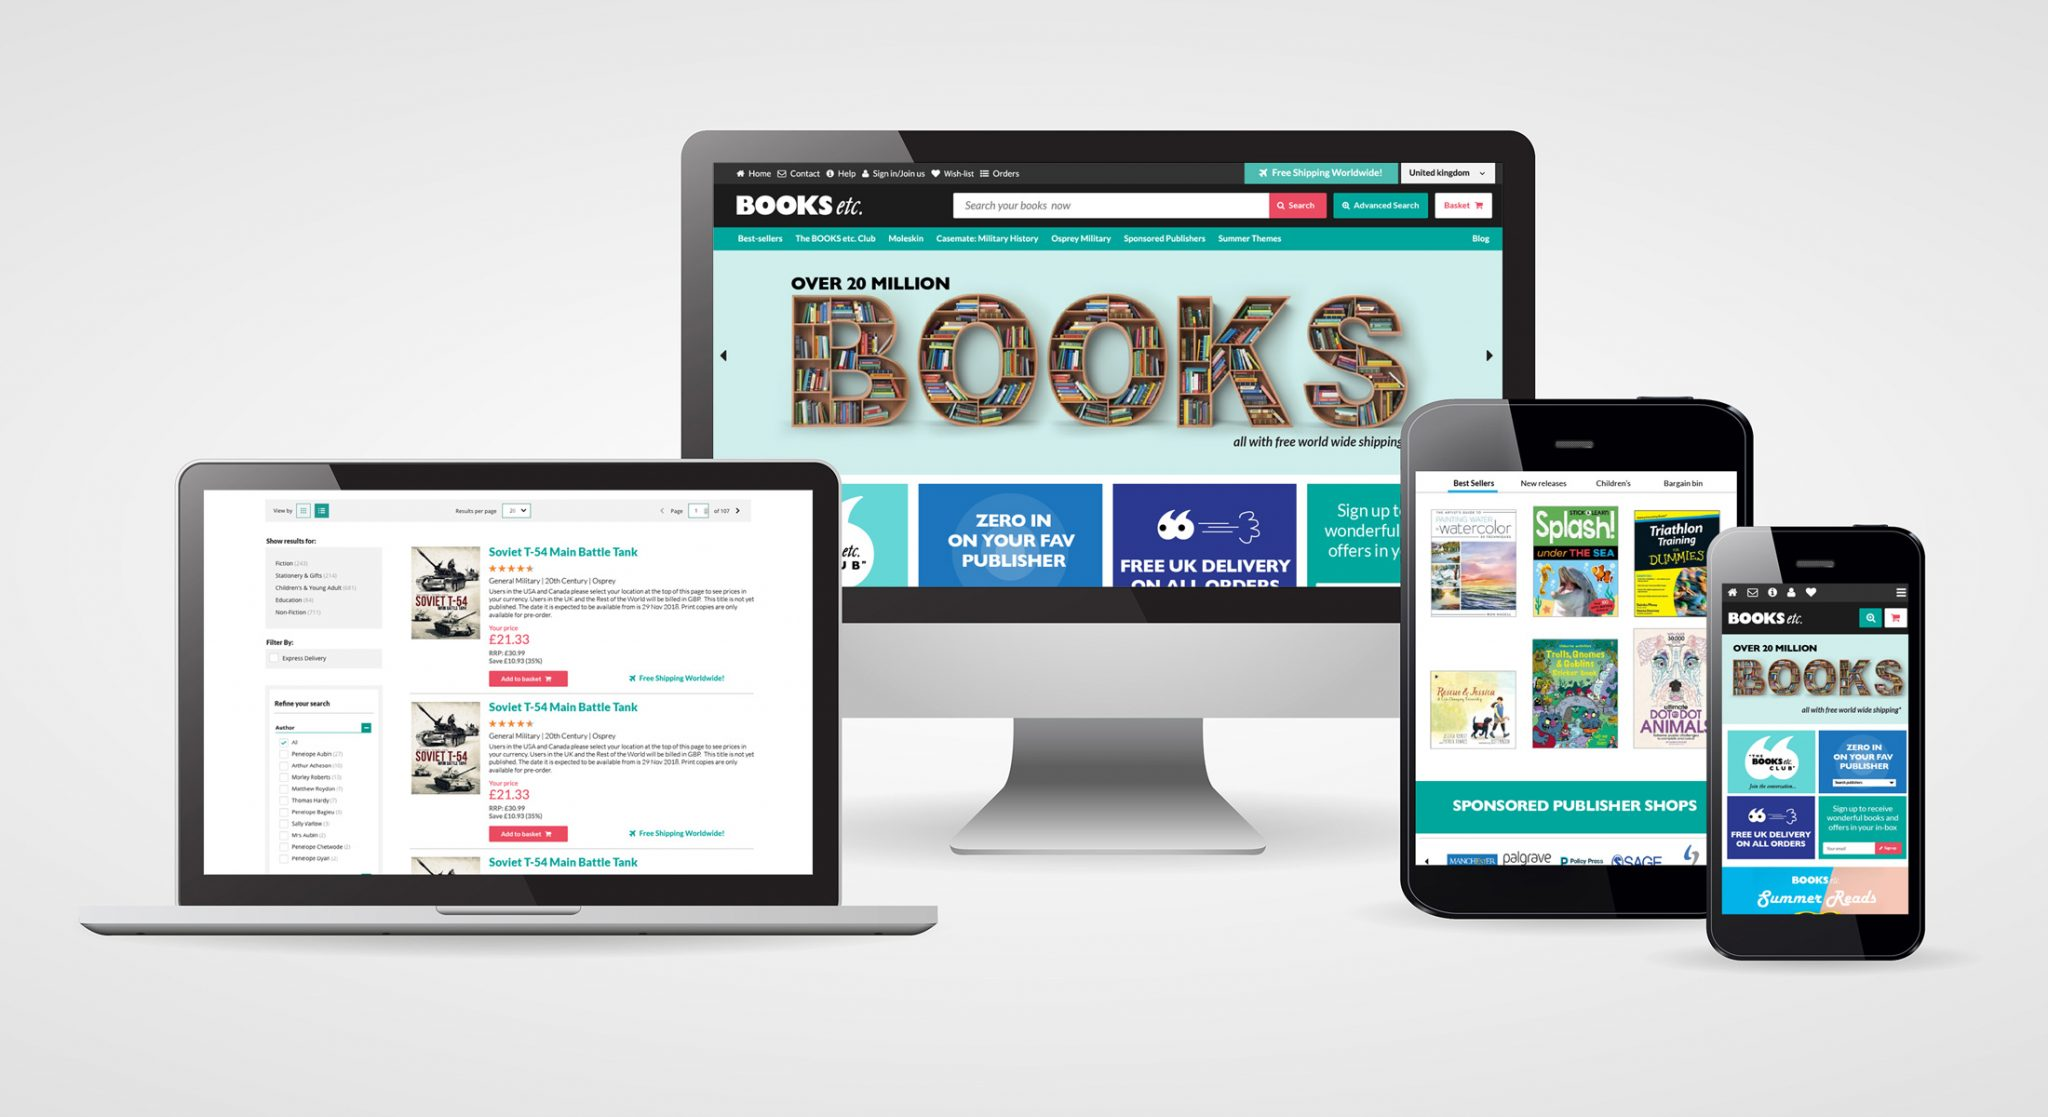 Books etc. website design